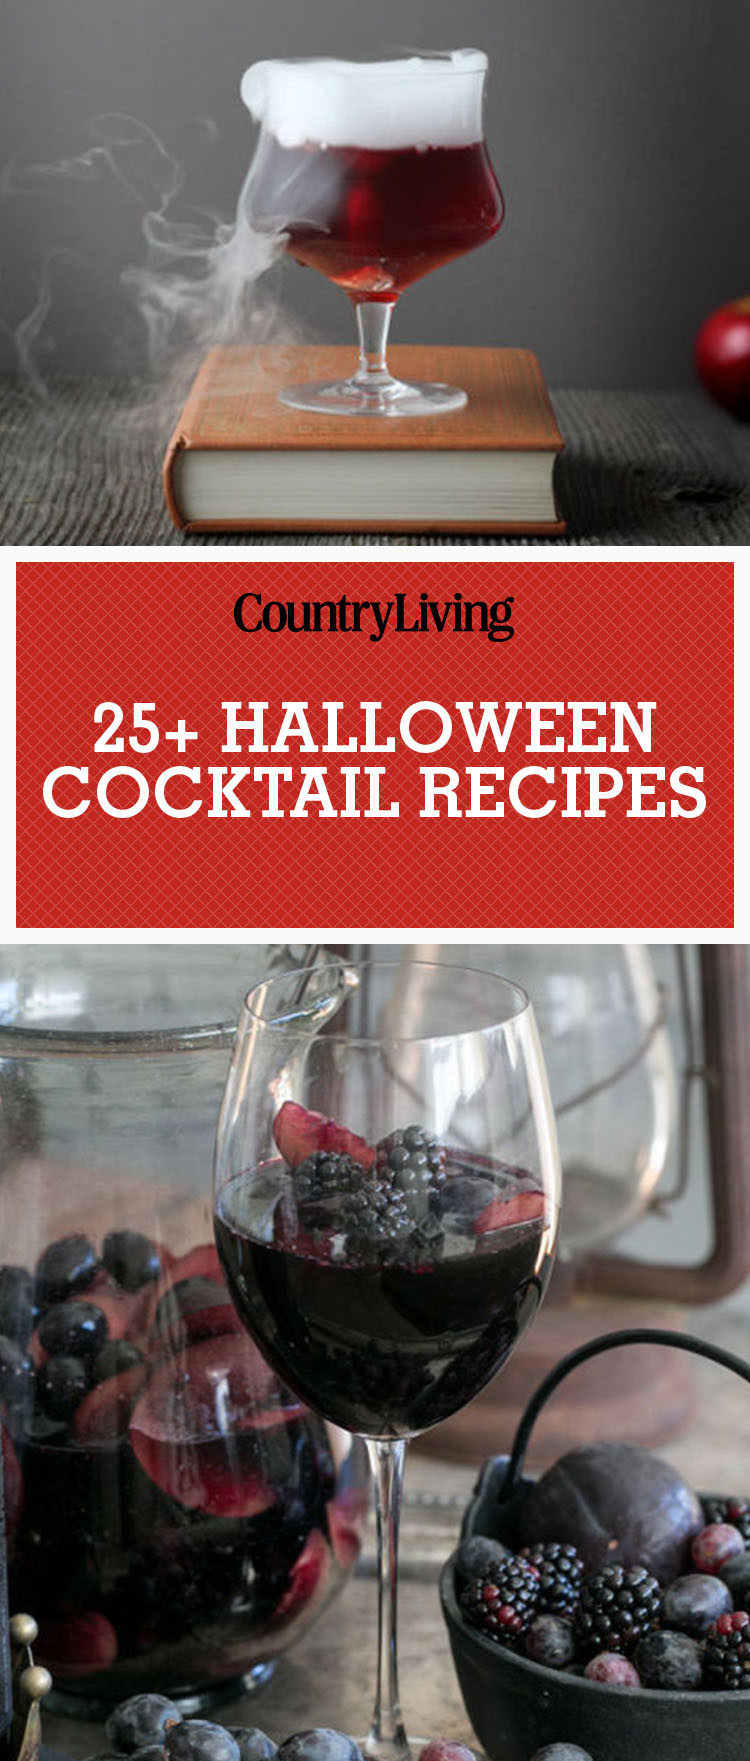 Easy Halloween Alcoholic Drinks  25 Easy Halloween Cocktails & Drinks Best Recipes for